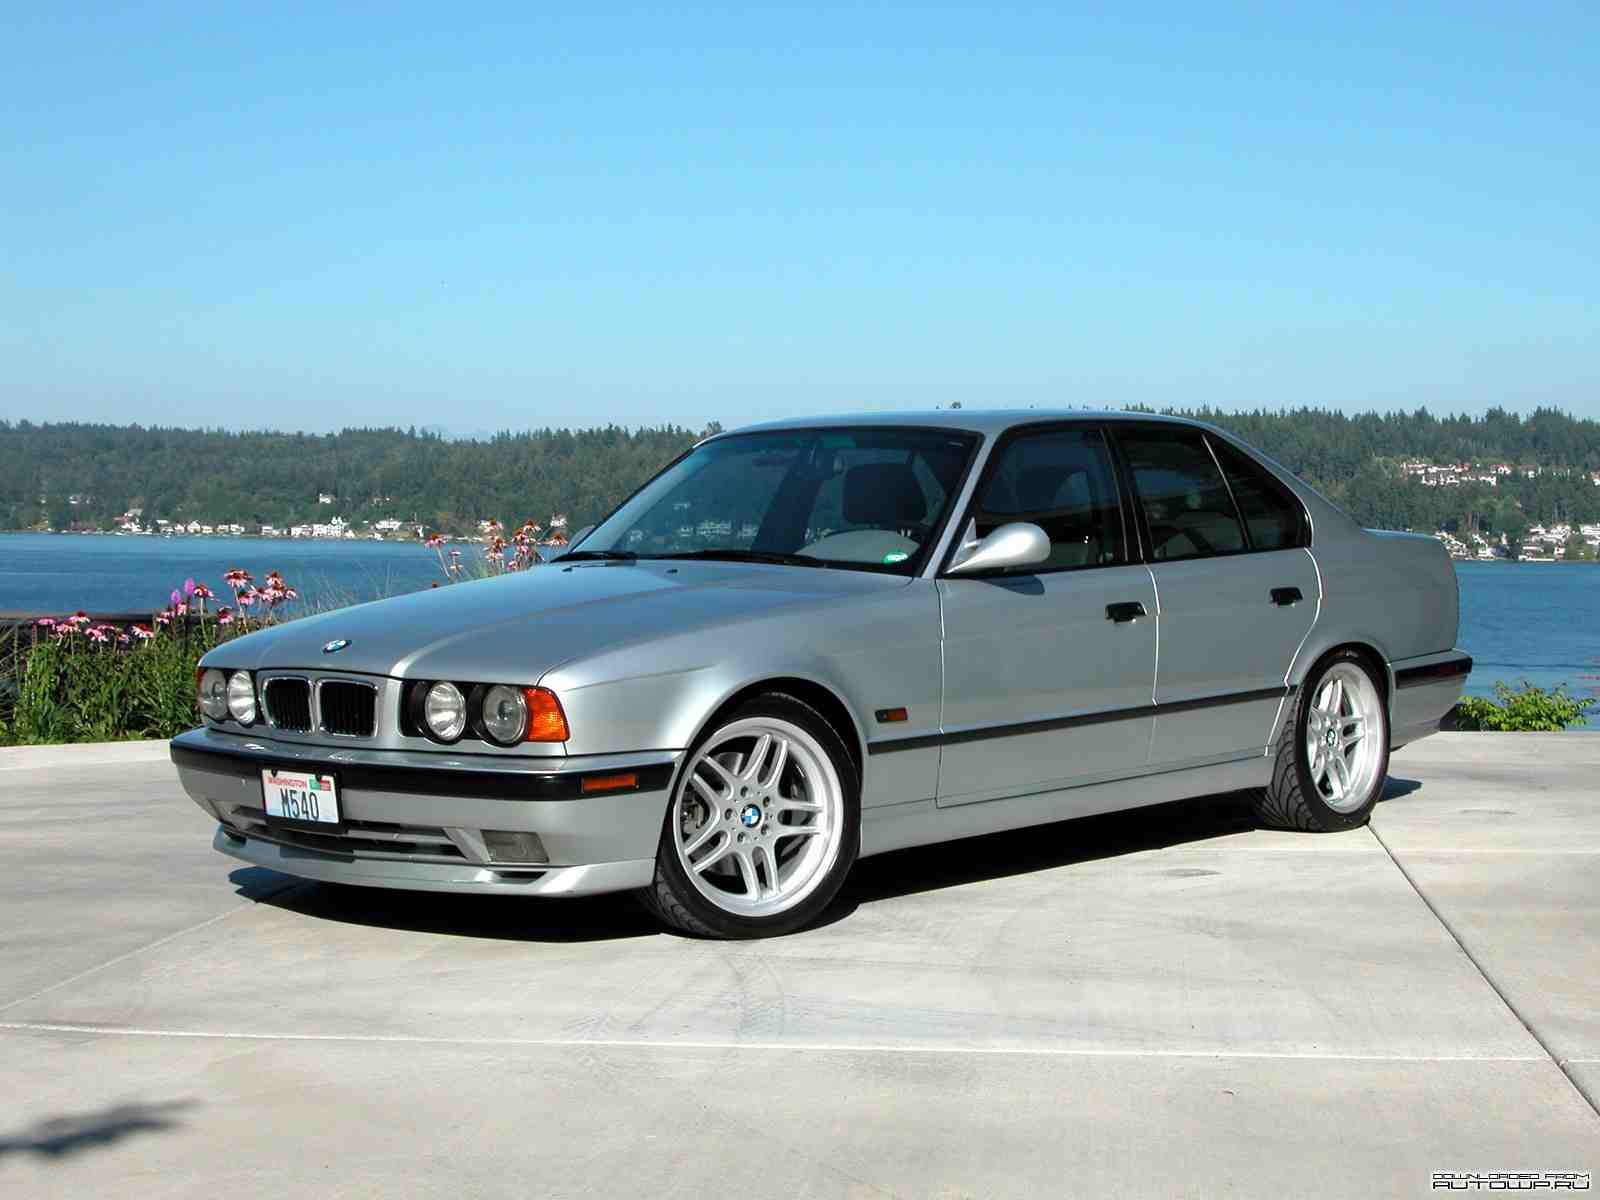 BMW 5 series 530i 1988 photo - 7